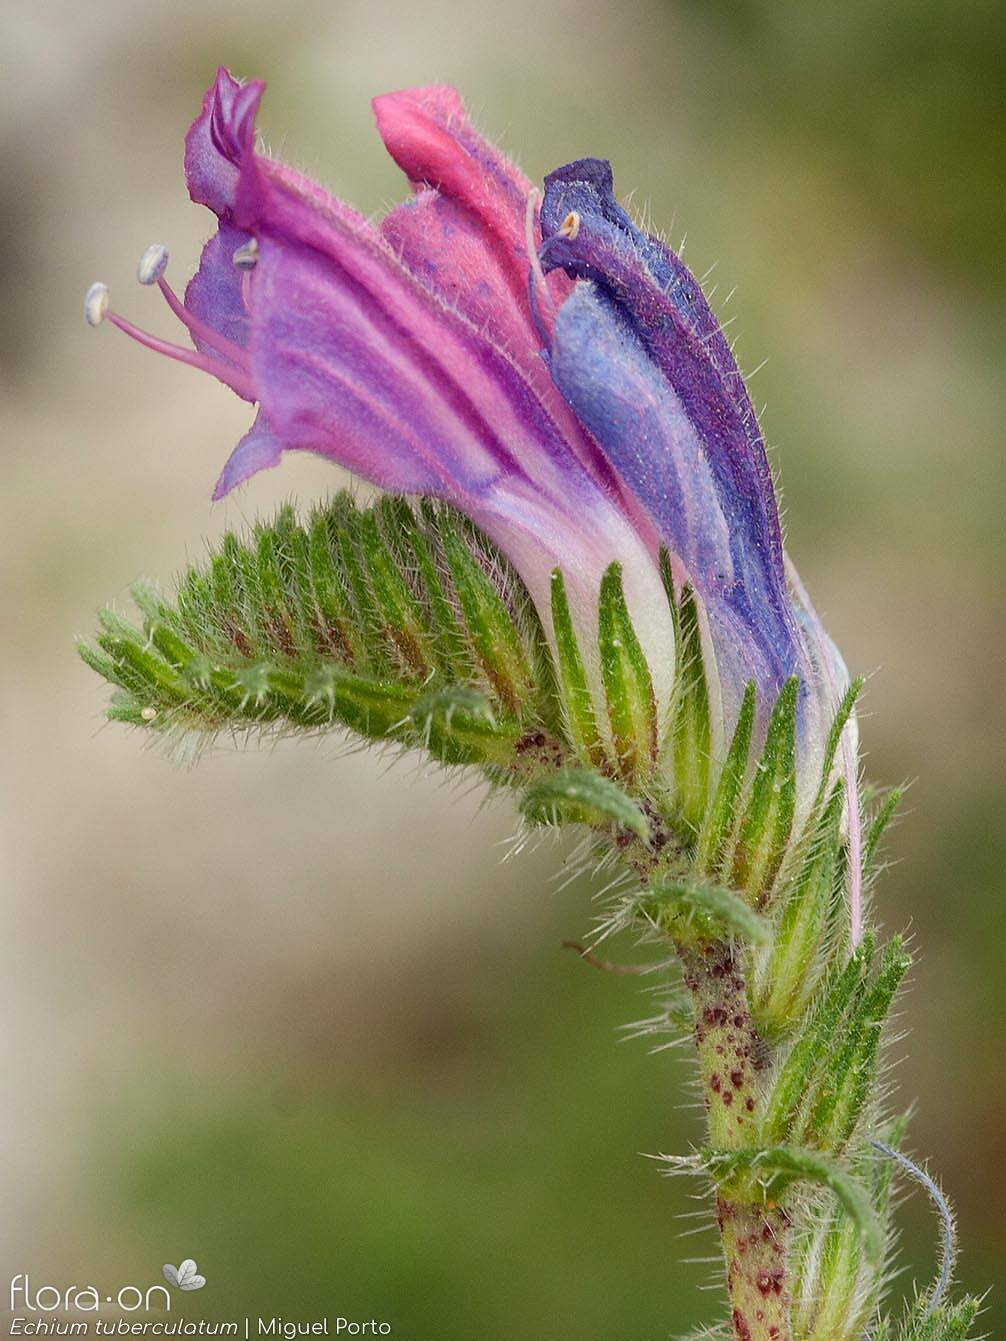 Echium tuberculatum - Flor (close-up) | Miguel Porto; CC BY-NC 4.0